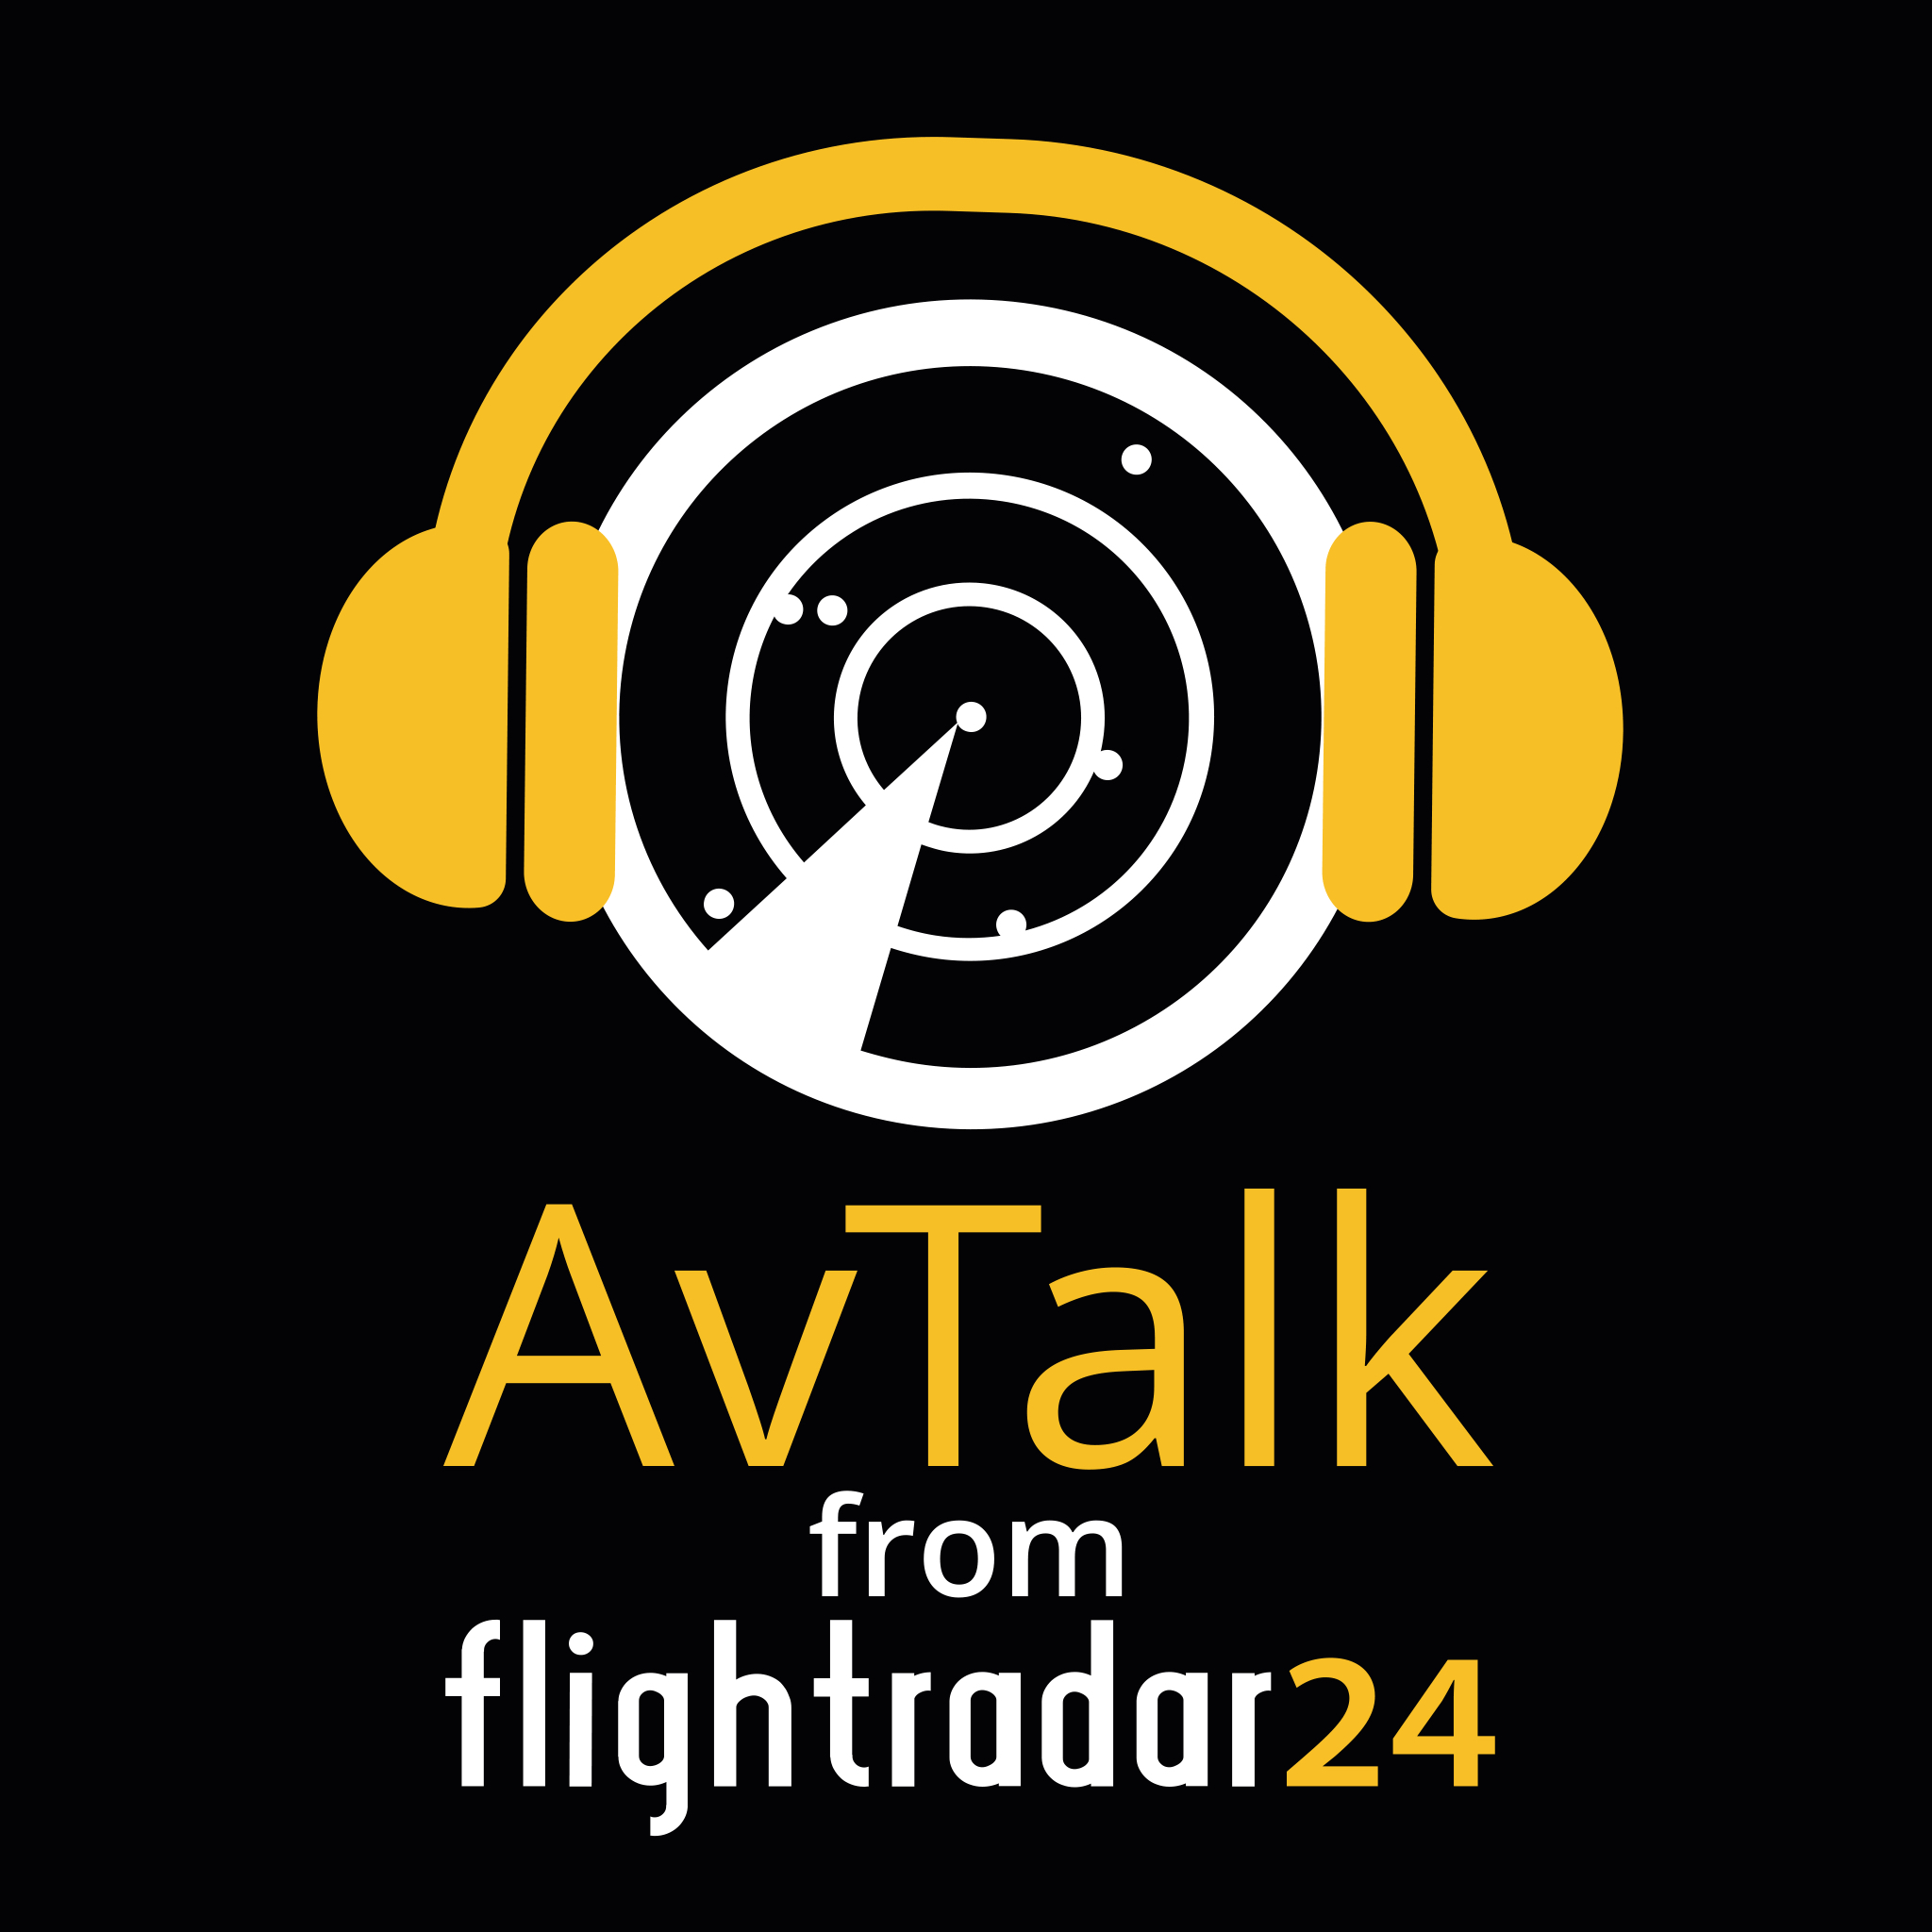 AvTalk - AvTalk is an aviation podcast by AvGeeks Ian Petchenik and Jason Rabinowitz. Ian and Jason have an extensive knowledge of the aviation industry and have a great, generally humorous rapport.AvTalk is produced by Flightradar24, so the podcast naturally discusses flight tracking topics, though it only accounts for a fraction of the topics discussed. The hosts passionately cover every contemporary industry topic.AvTalk is an easy listen that will leave you greatly disappointed when it is over, only because it'll be two-ish weeks until the next release. That's when it's time to start back-listening from Episode 1!Frequency: Approximately every two weeksLength: 30-45 minutes on average